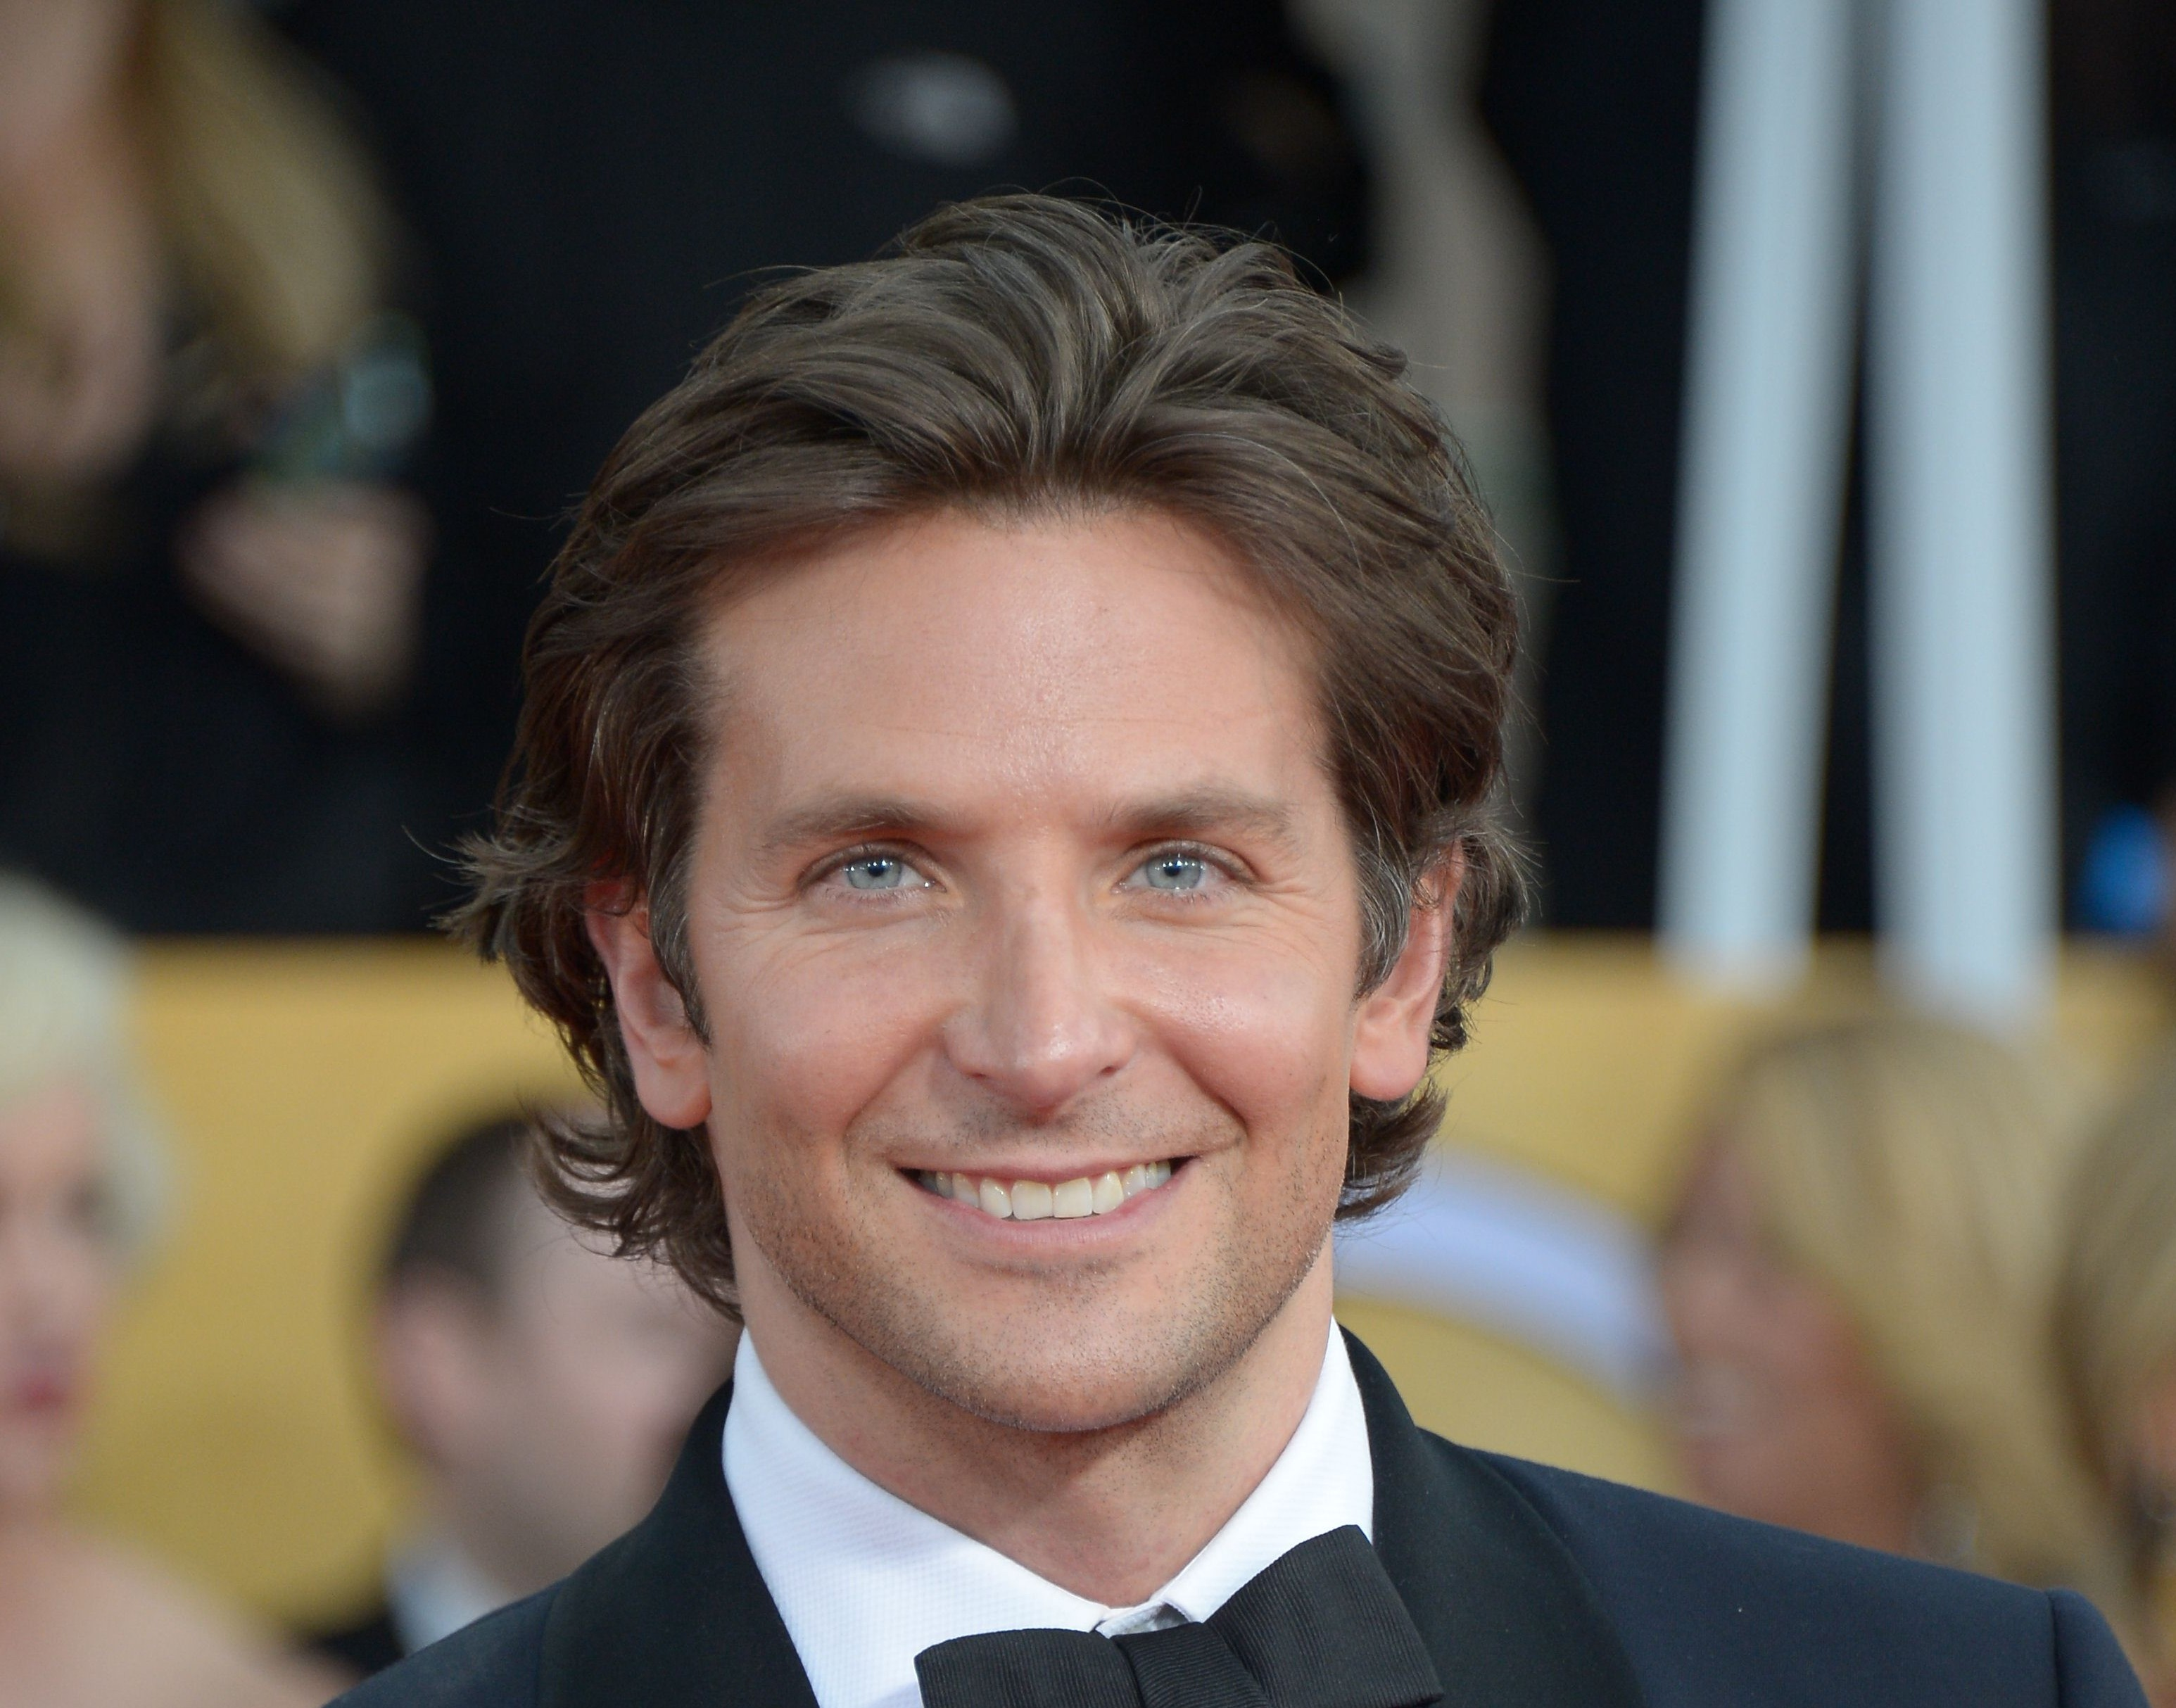 Bradley Cooper denies rumours he is set to play Lance Armstrong in JJ Abrams biopic